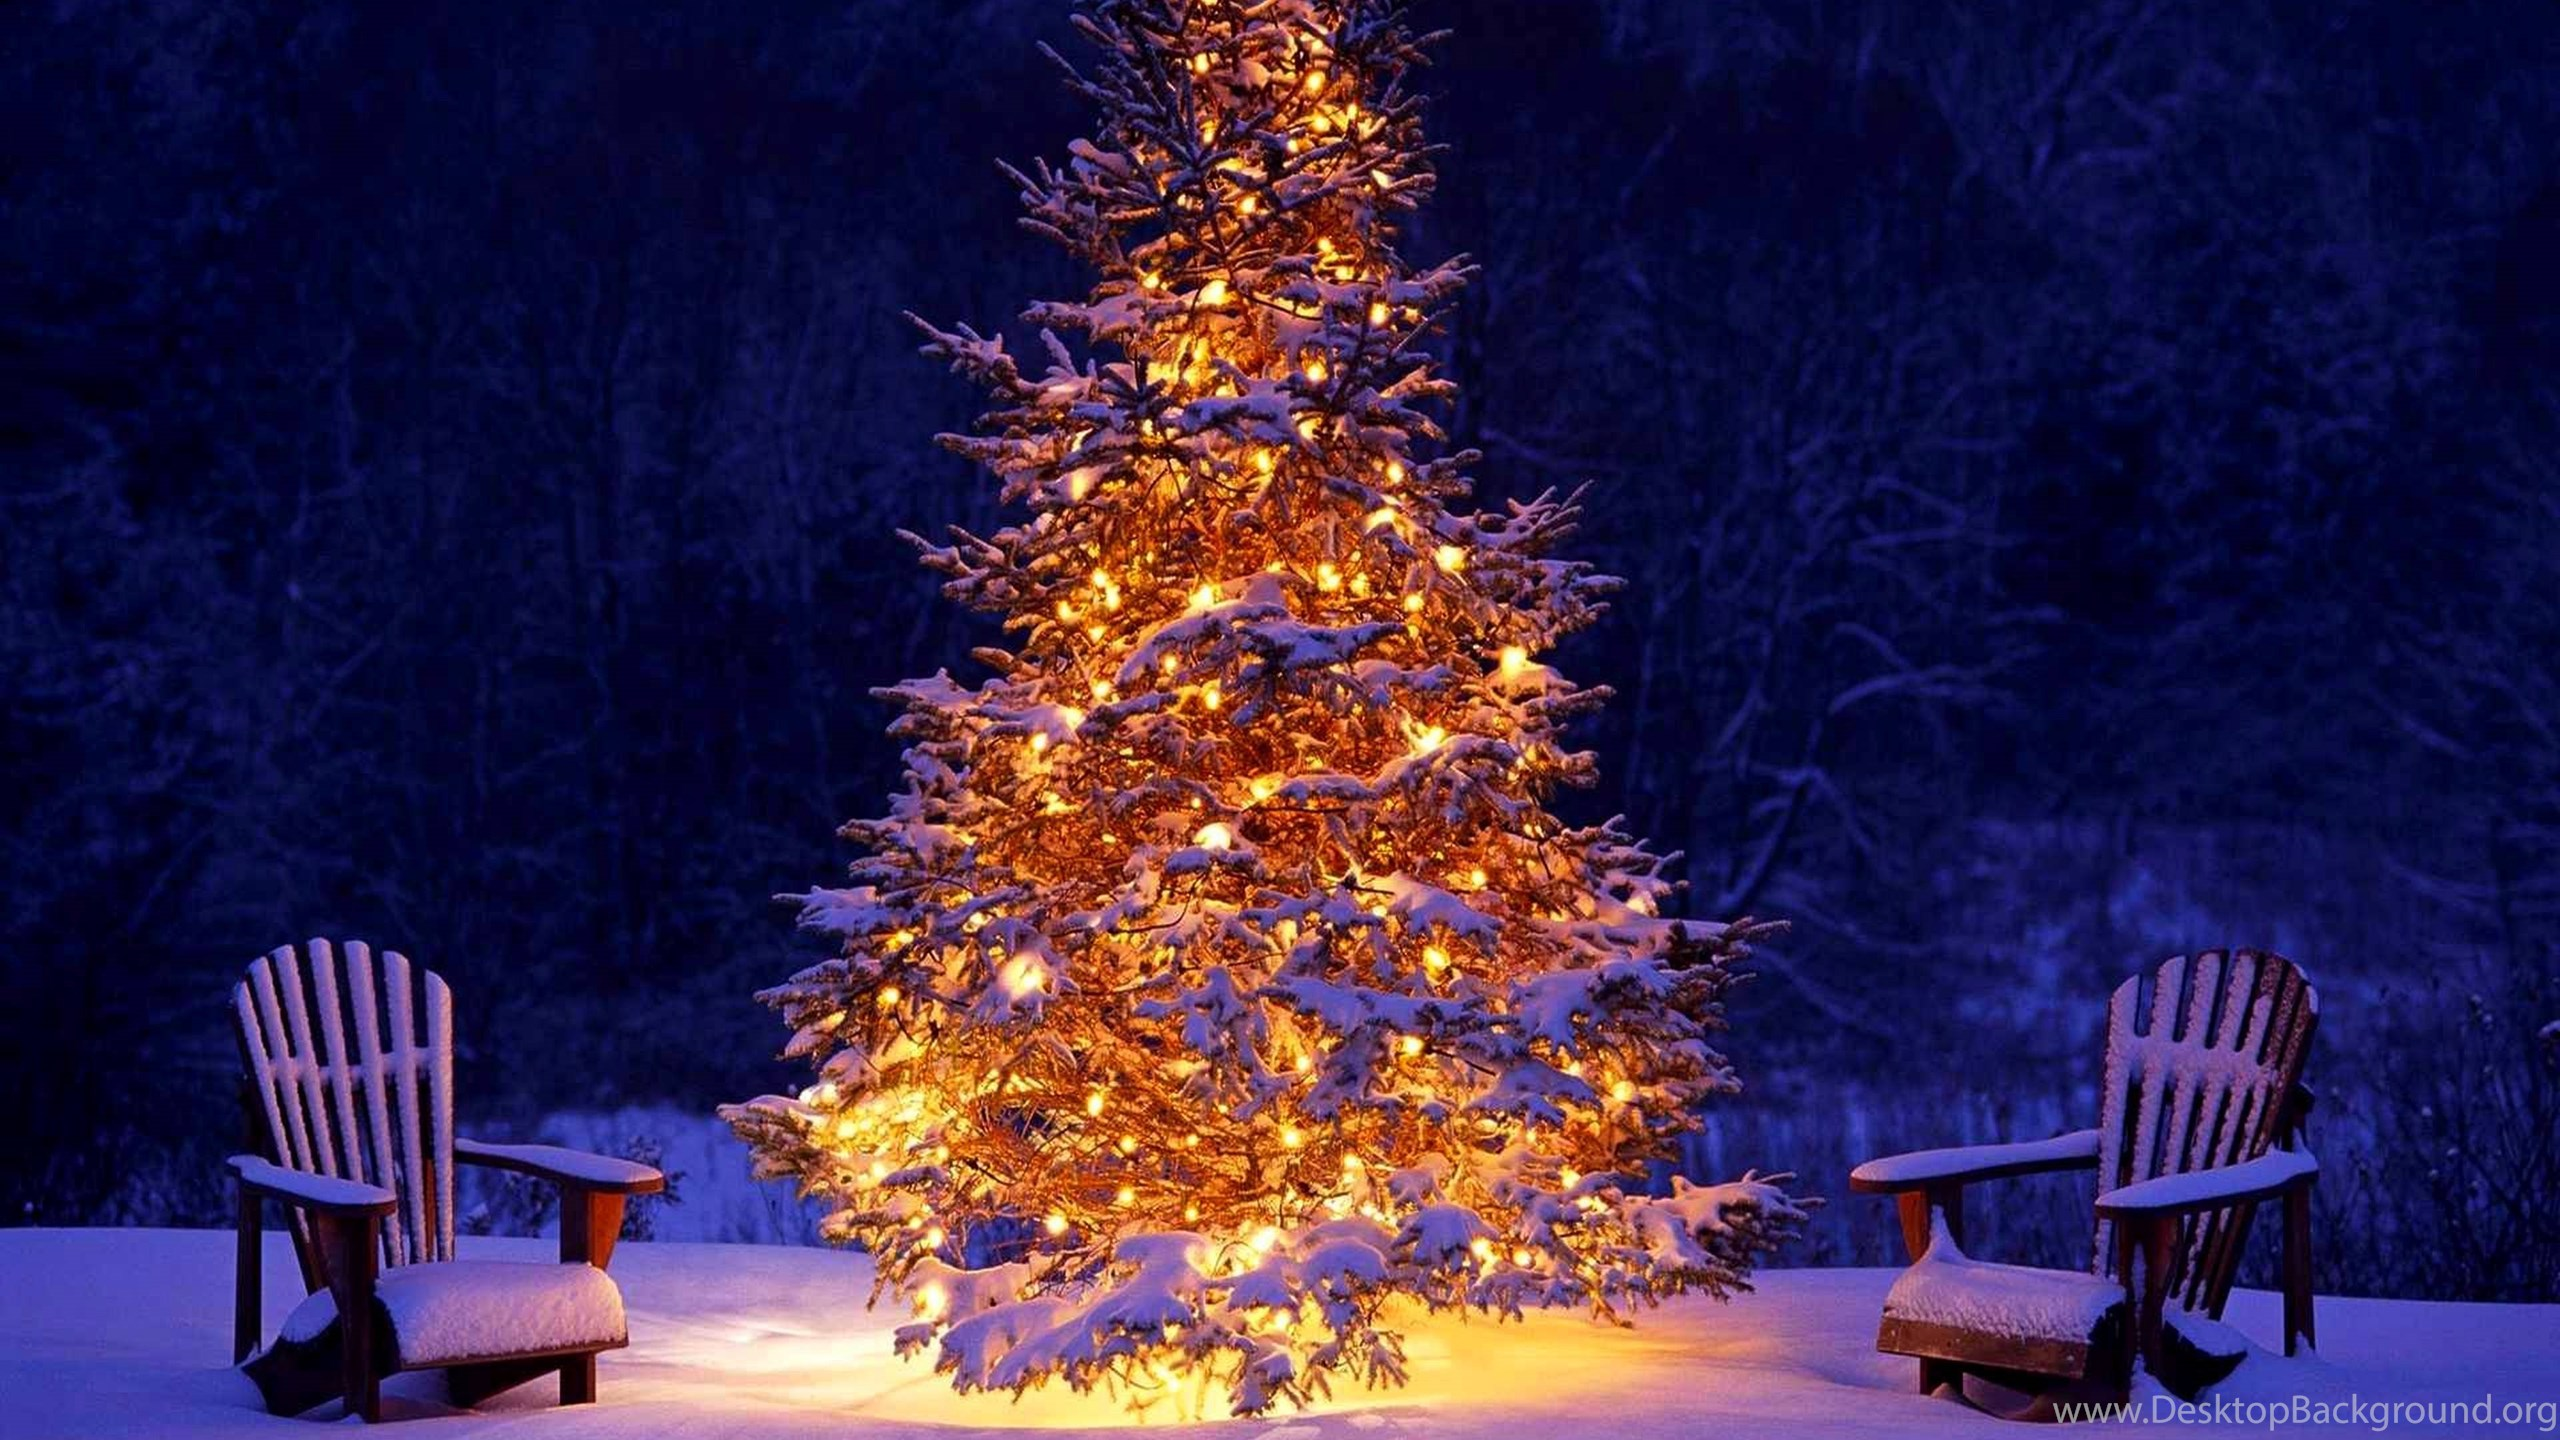 winter holiday now forest christmas, holidays wallpapers desktop